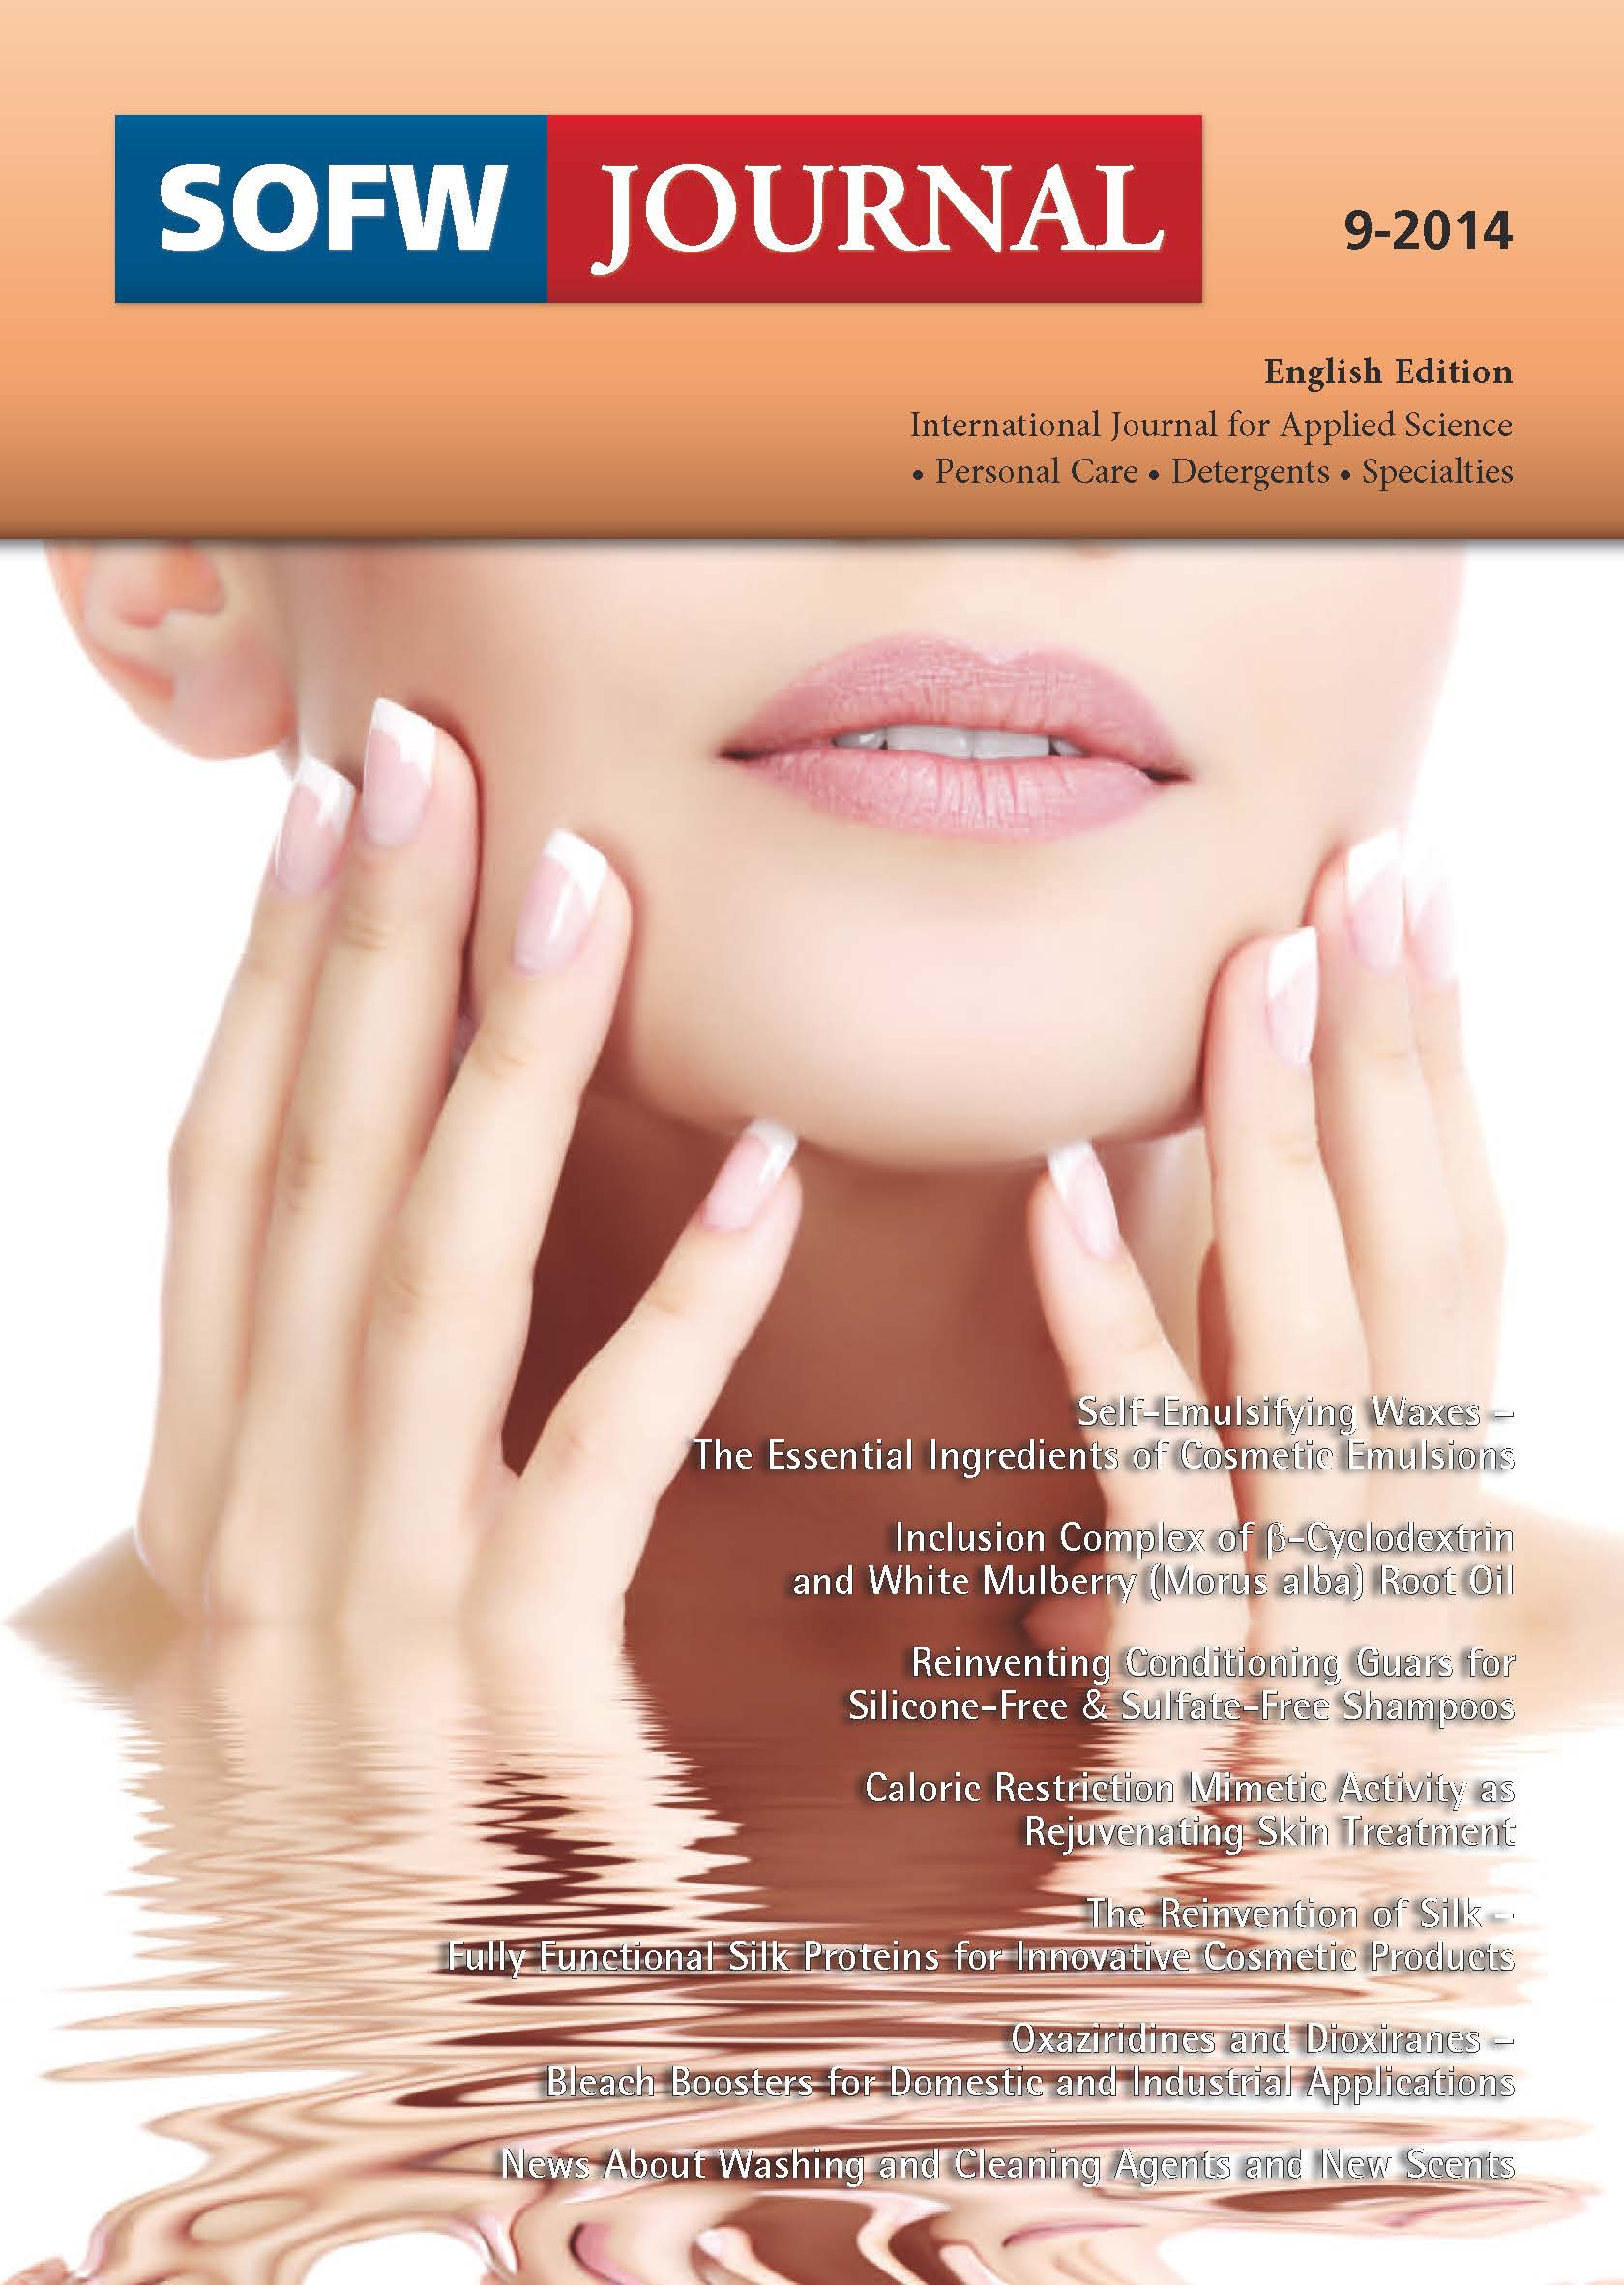 sofwjournal_en_2014_09_cover